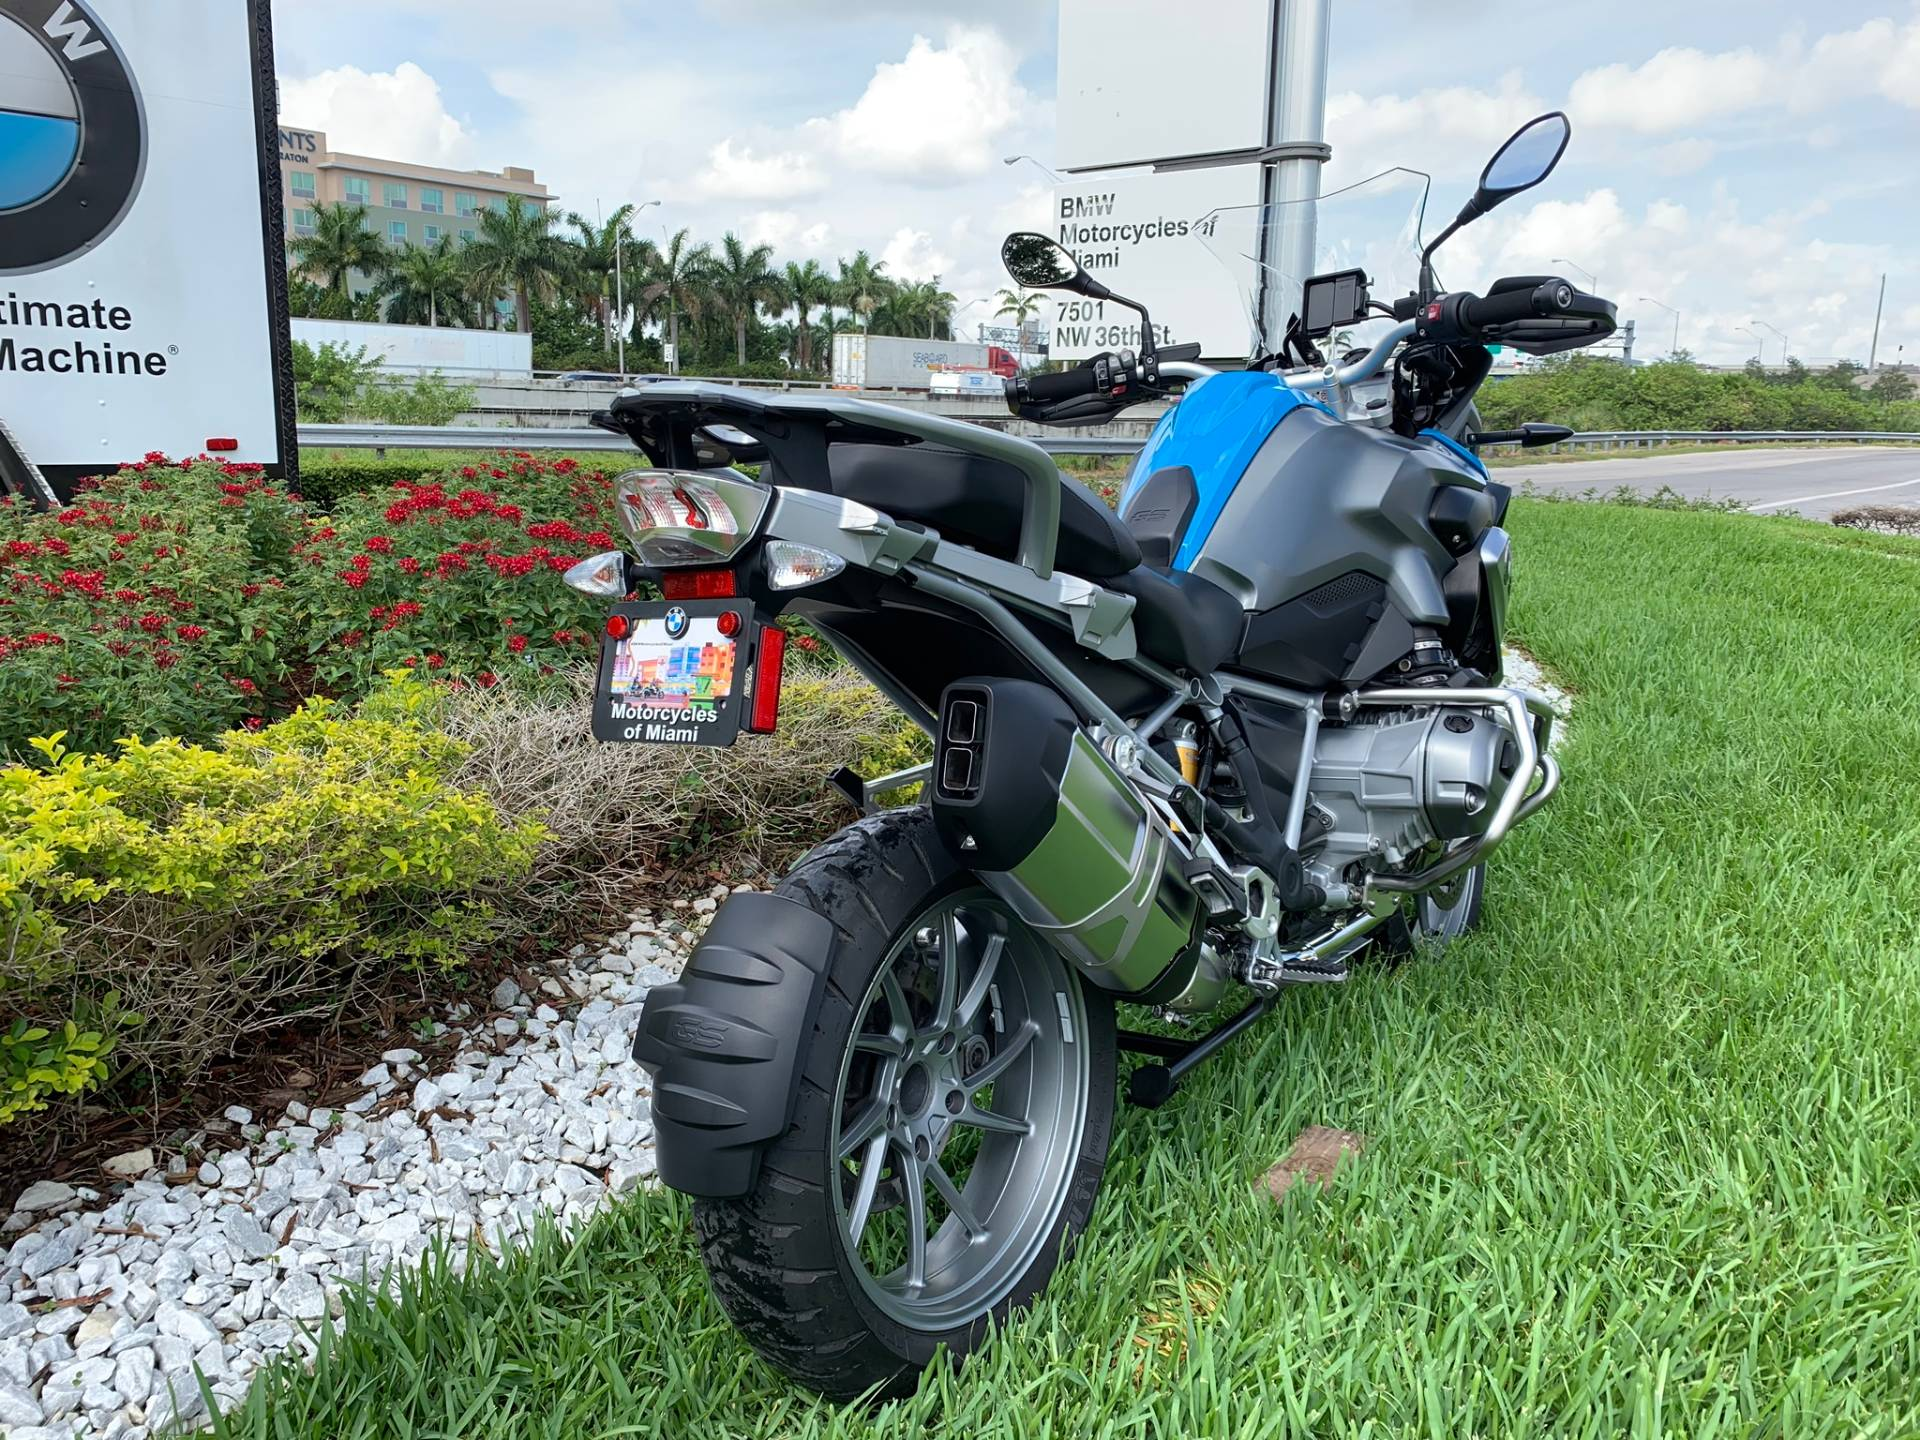 Used 2014 BMW R 1200 GS for sale, Pre-owned BMW R1200GS for sale, BMW Motorcycle Adventure, used BMW GS Fire Blue, BMW Motorcycles of Miami, Motorcycles of Miami, Motorcycles Miami, New Motorcycles, Used Motorcycles, pre-owned. #BMWMotorcyclesOfMiami #MotorcyclesOfMiami - Photo 21